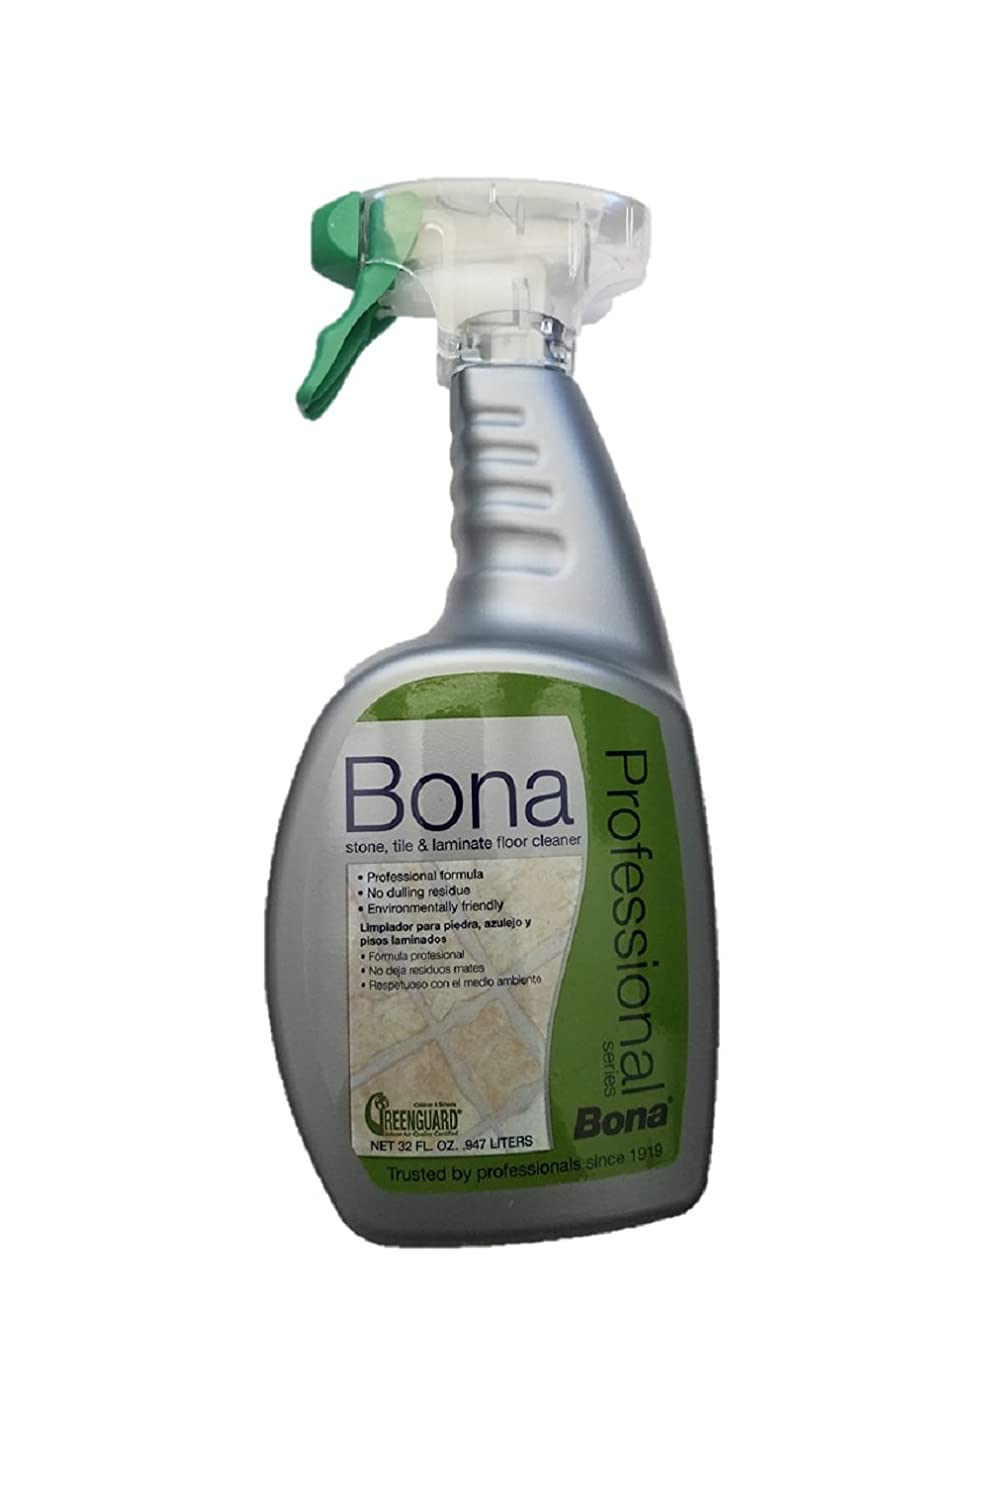 Amazon bona pro series wm700051188 stone tile and laminate amazon bona pro series wm700051188 stone tile and laminate cleaner ready to use 32 ounce spray home kitchen dailygadgetfo Choice Image